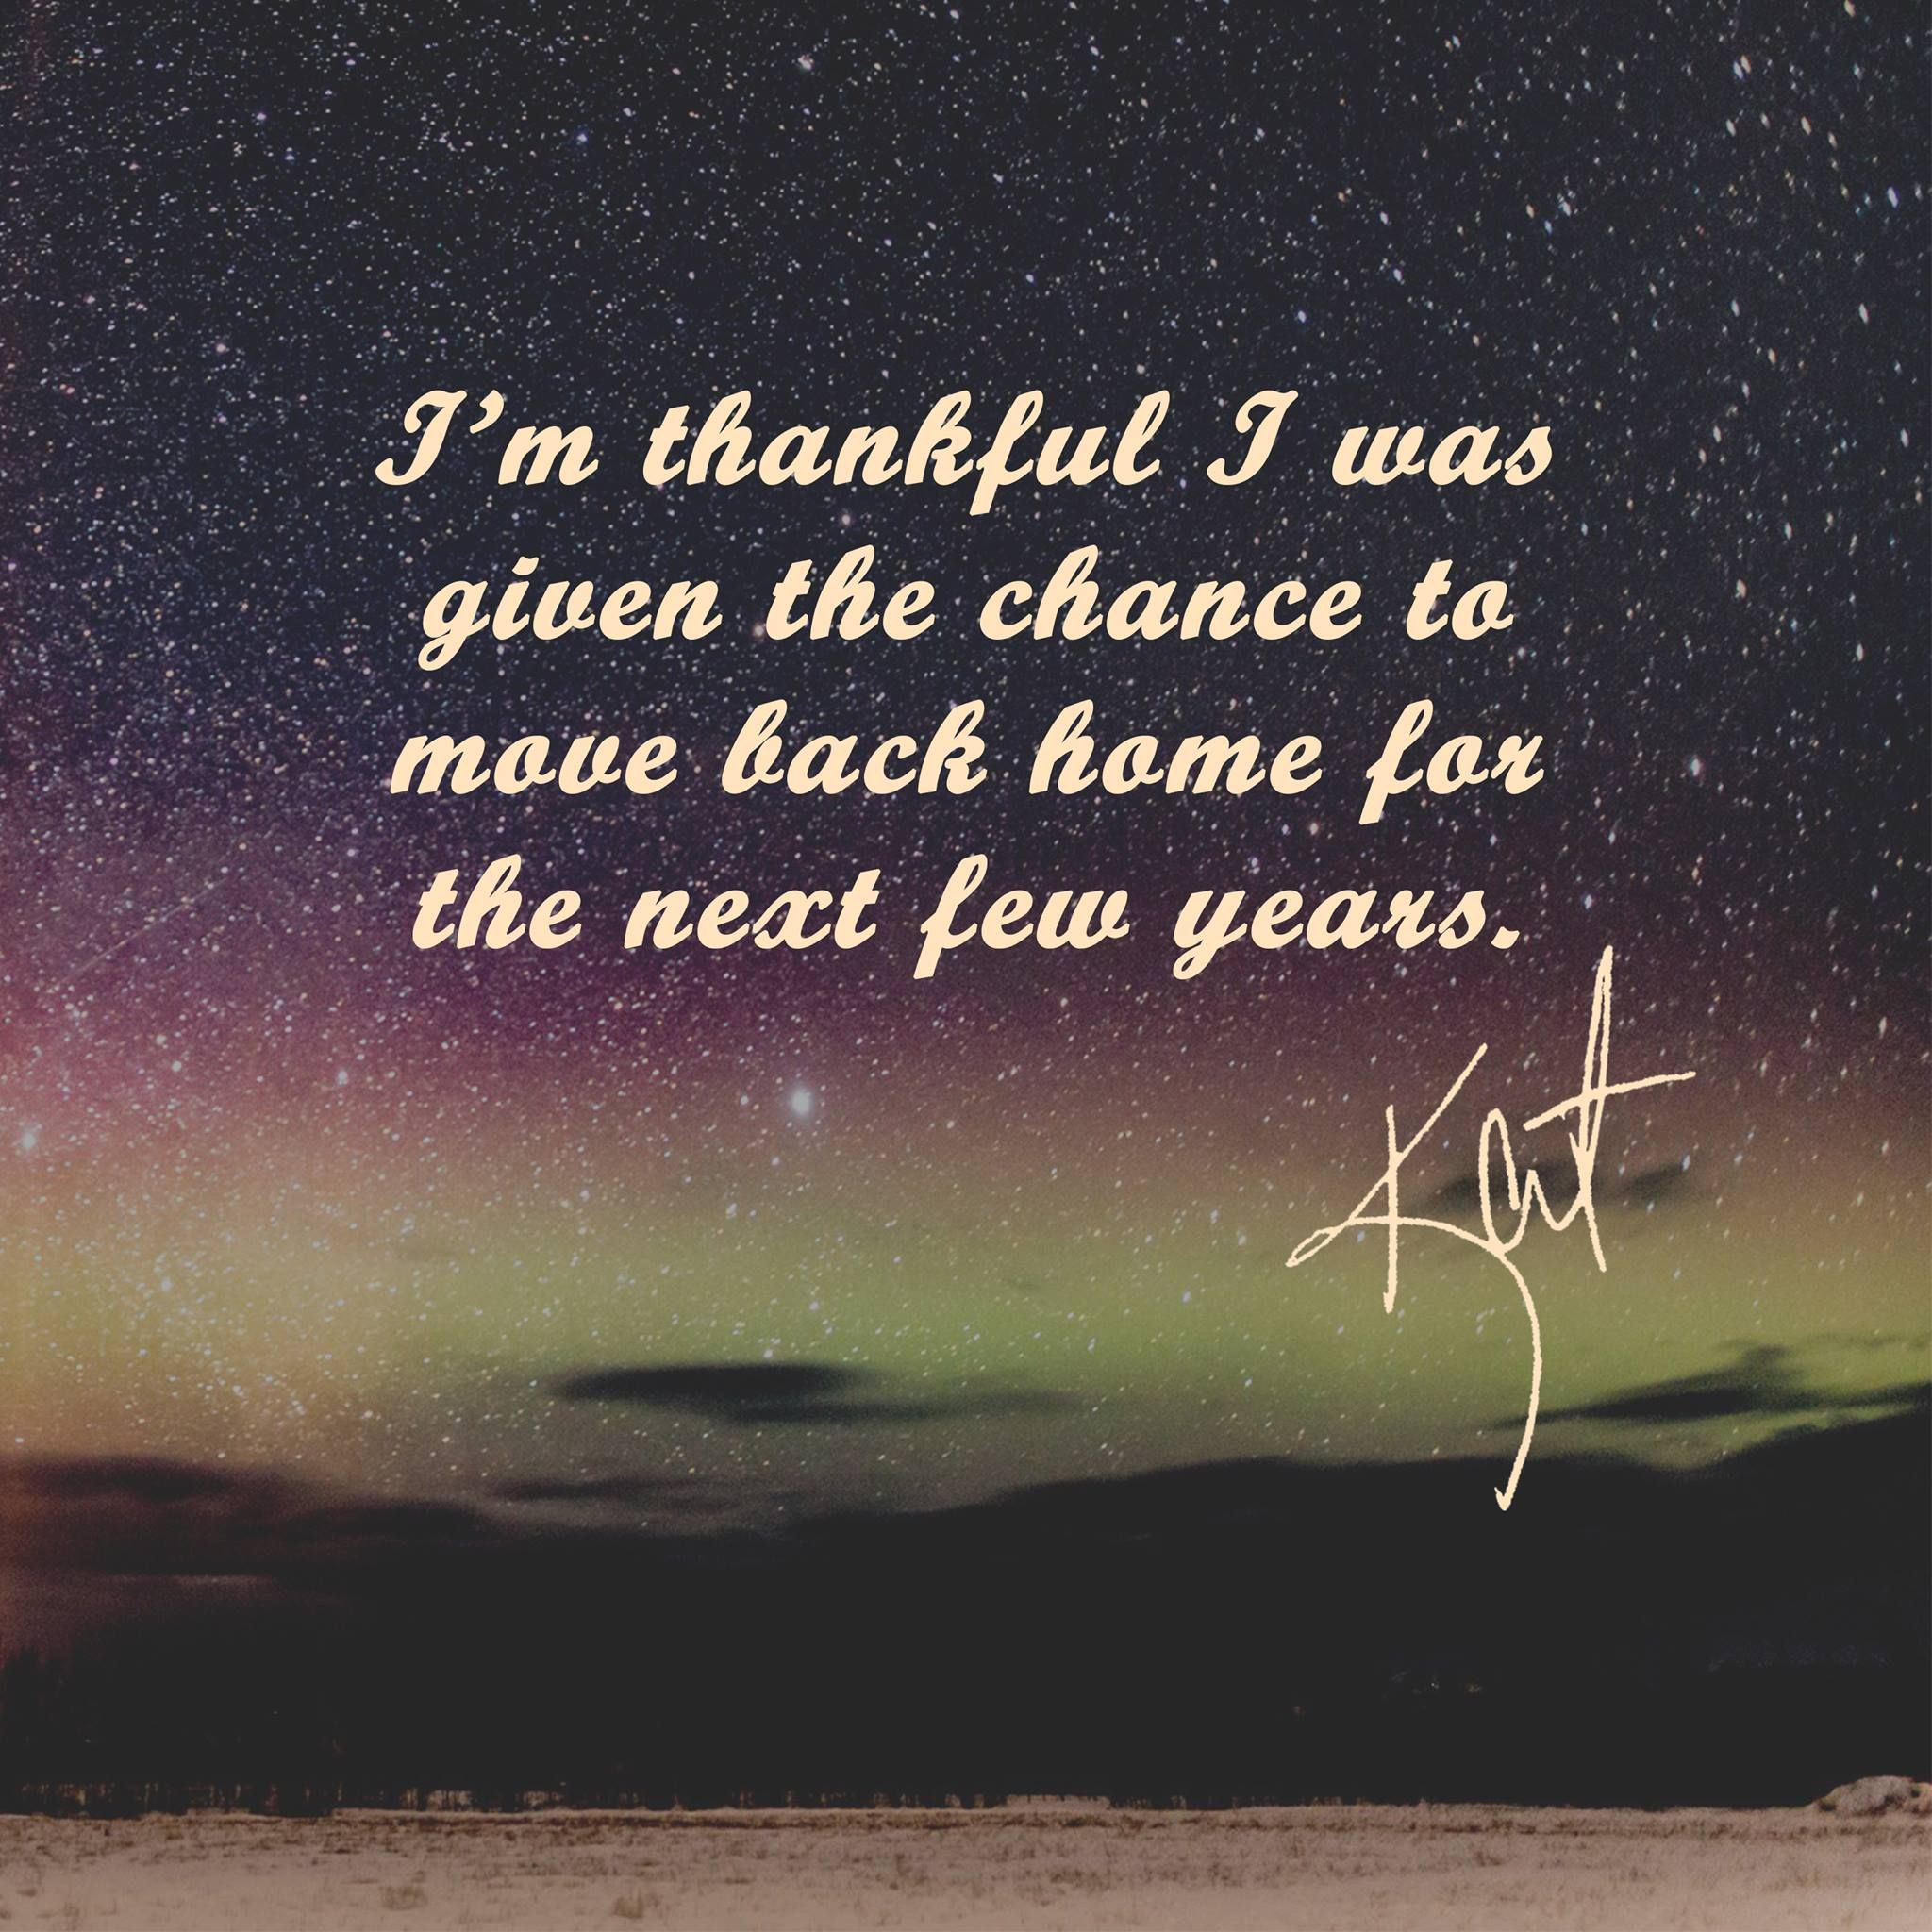 I am thankful i was given the chance to move back home for